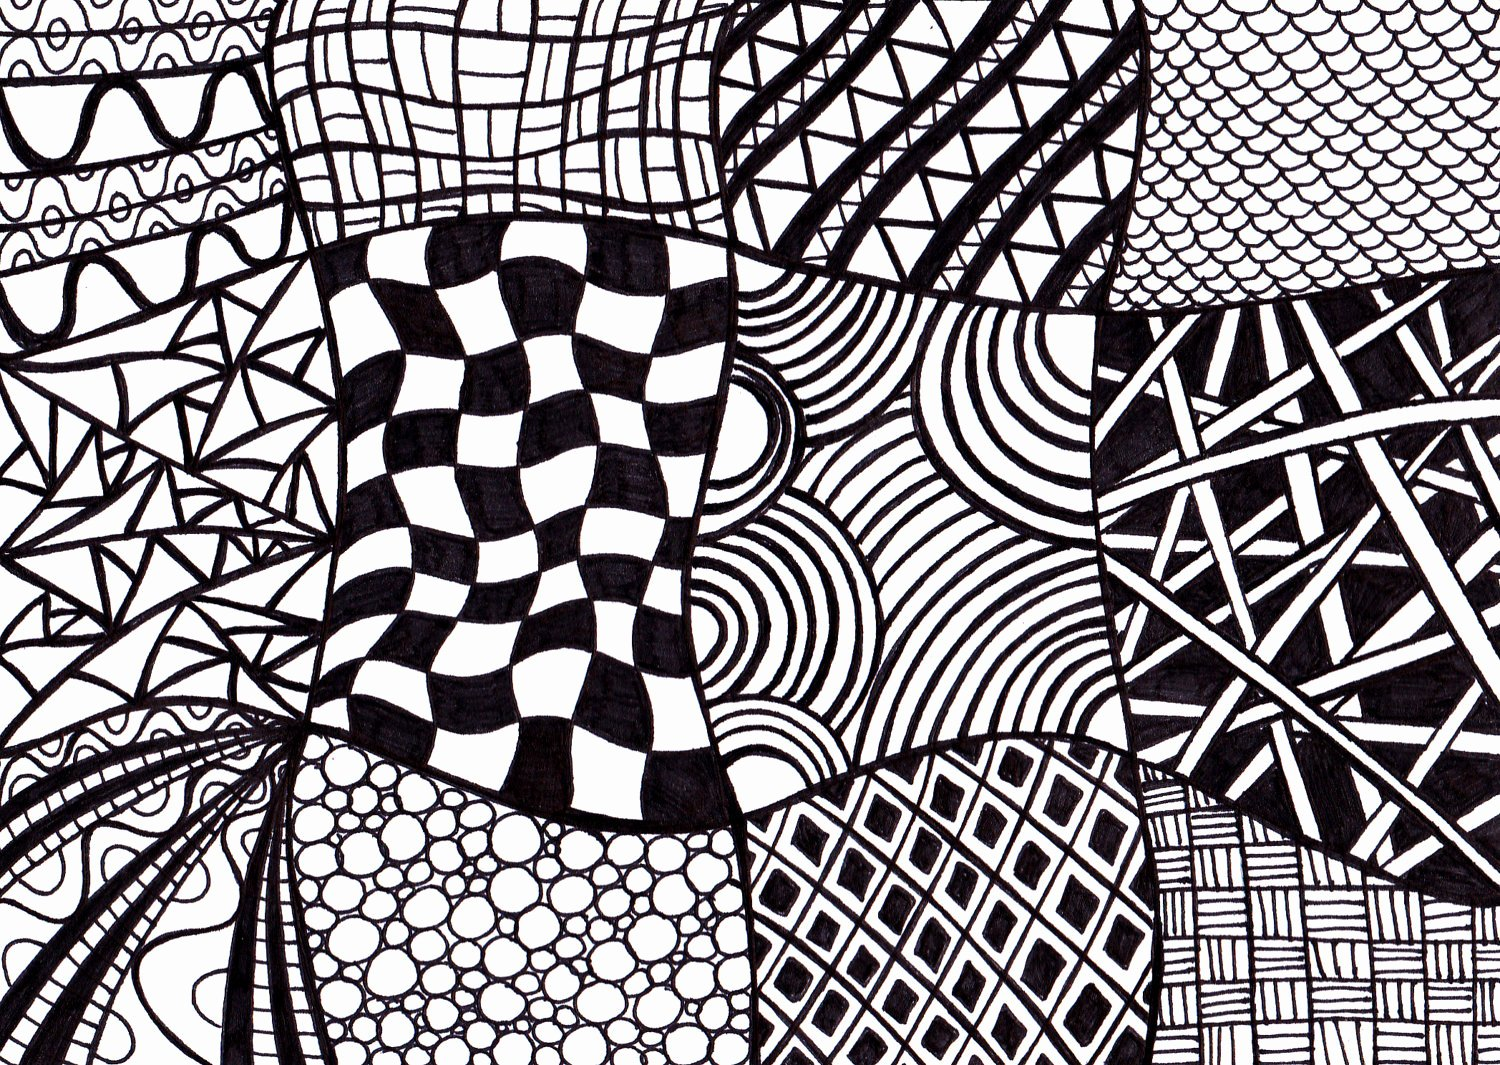 Zentangle Patterns to Print Awesome Black and White Printable Art Zentangle Inspired Ink Drawing